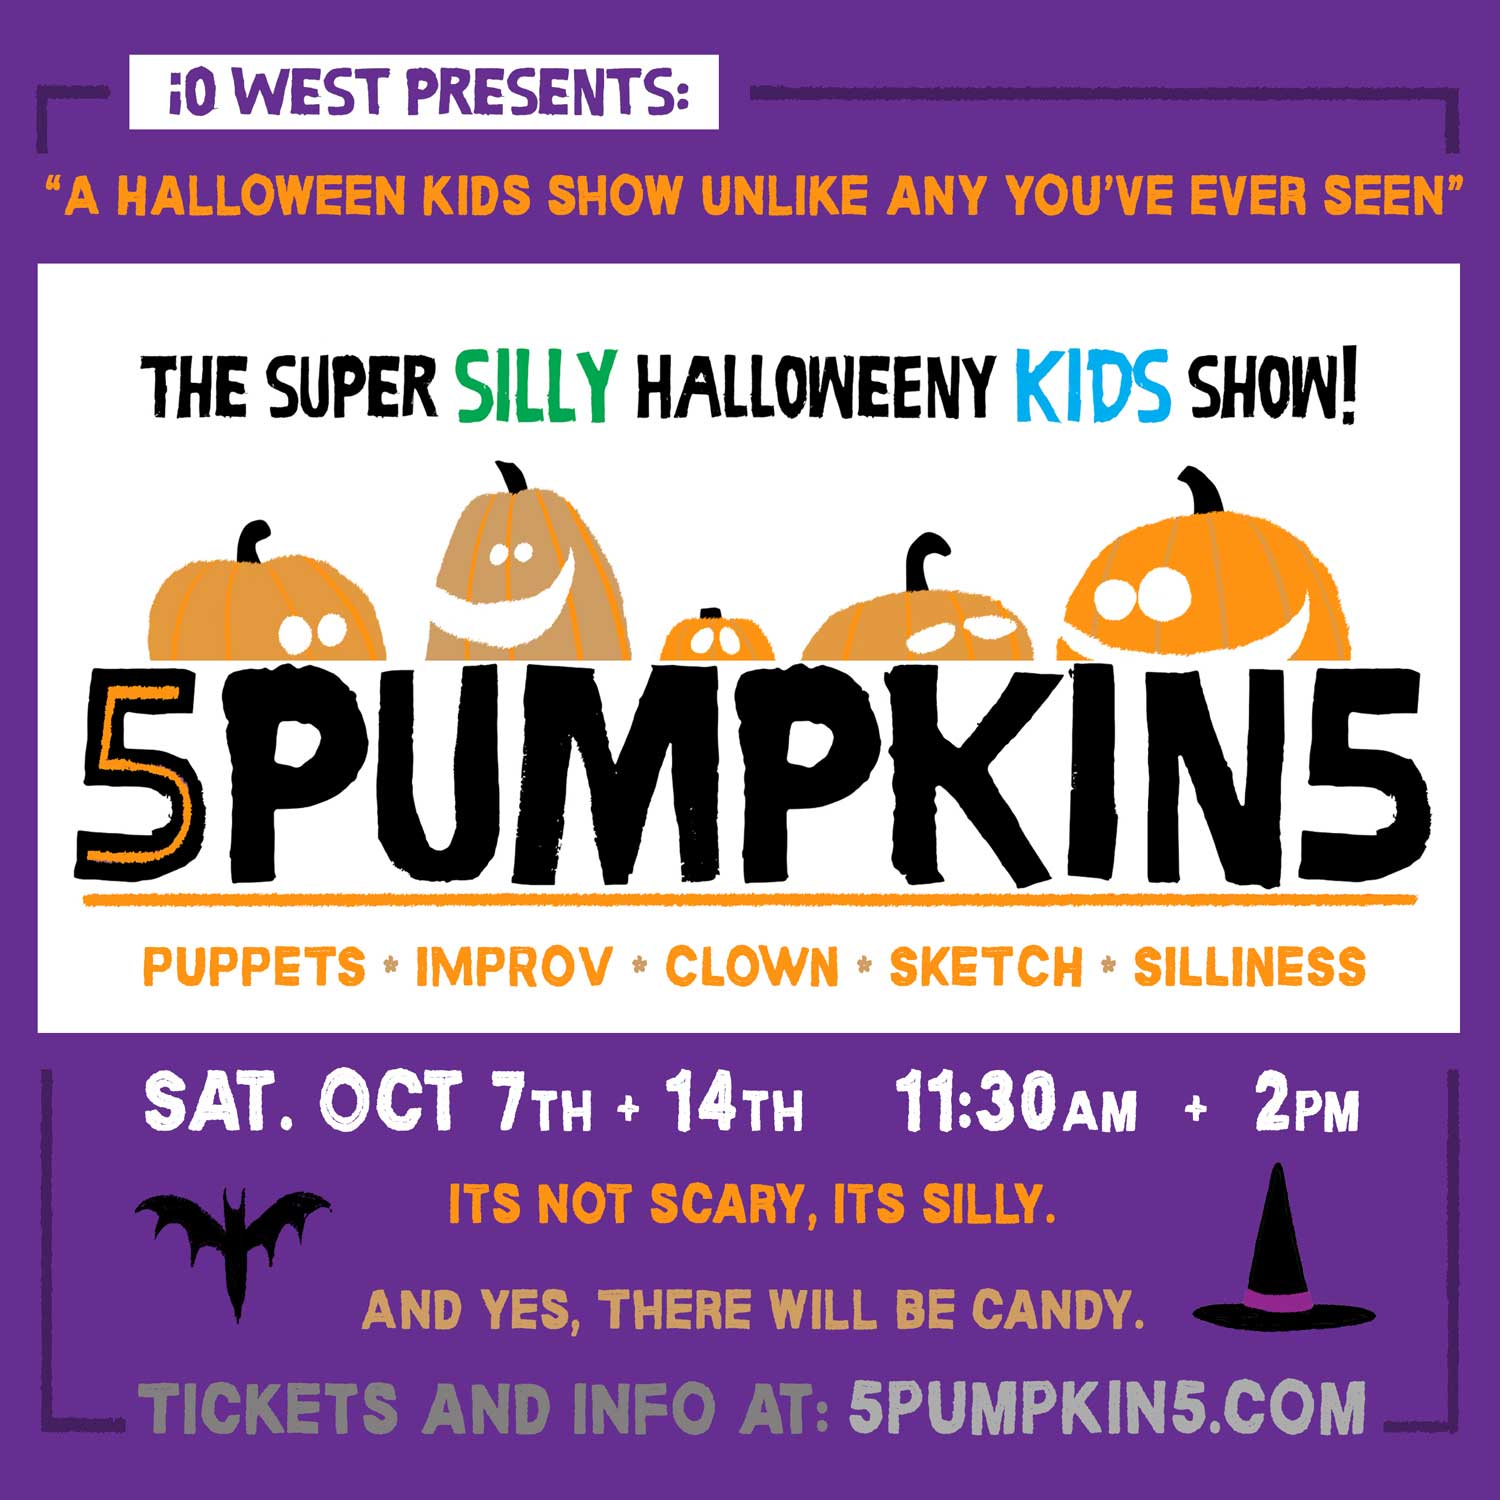 5PUMPKIN5: The Super Silly Halloweeny Kids Show